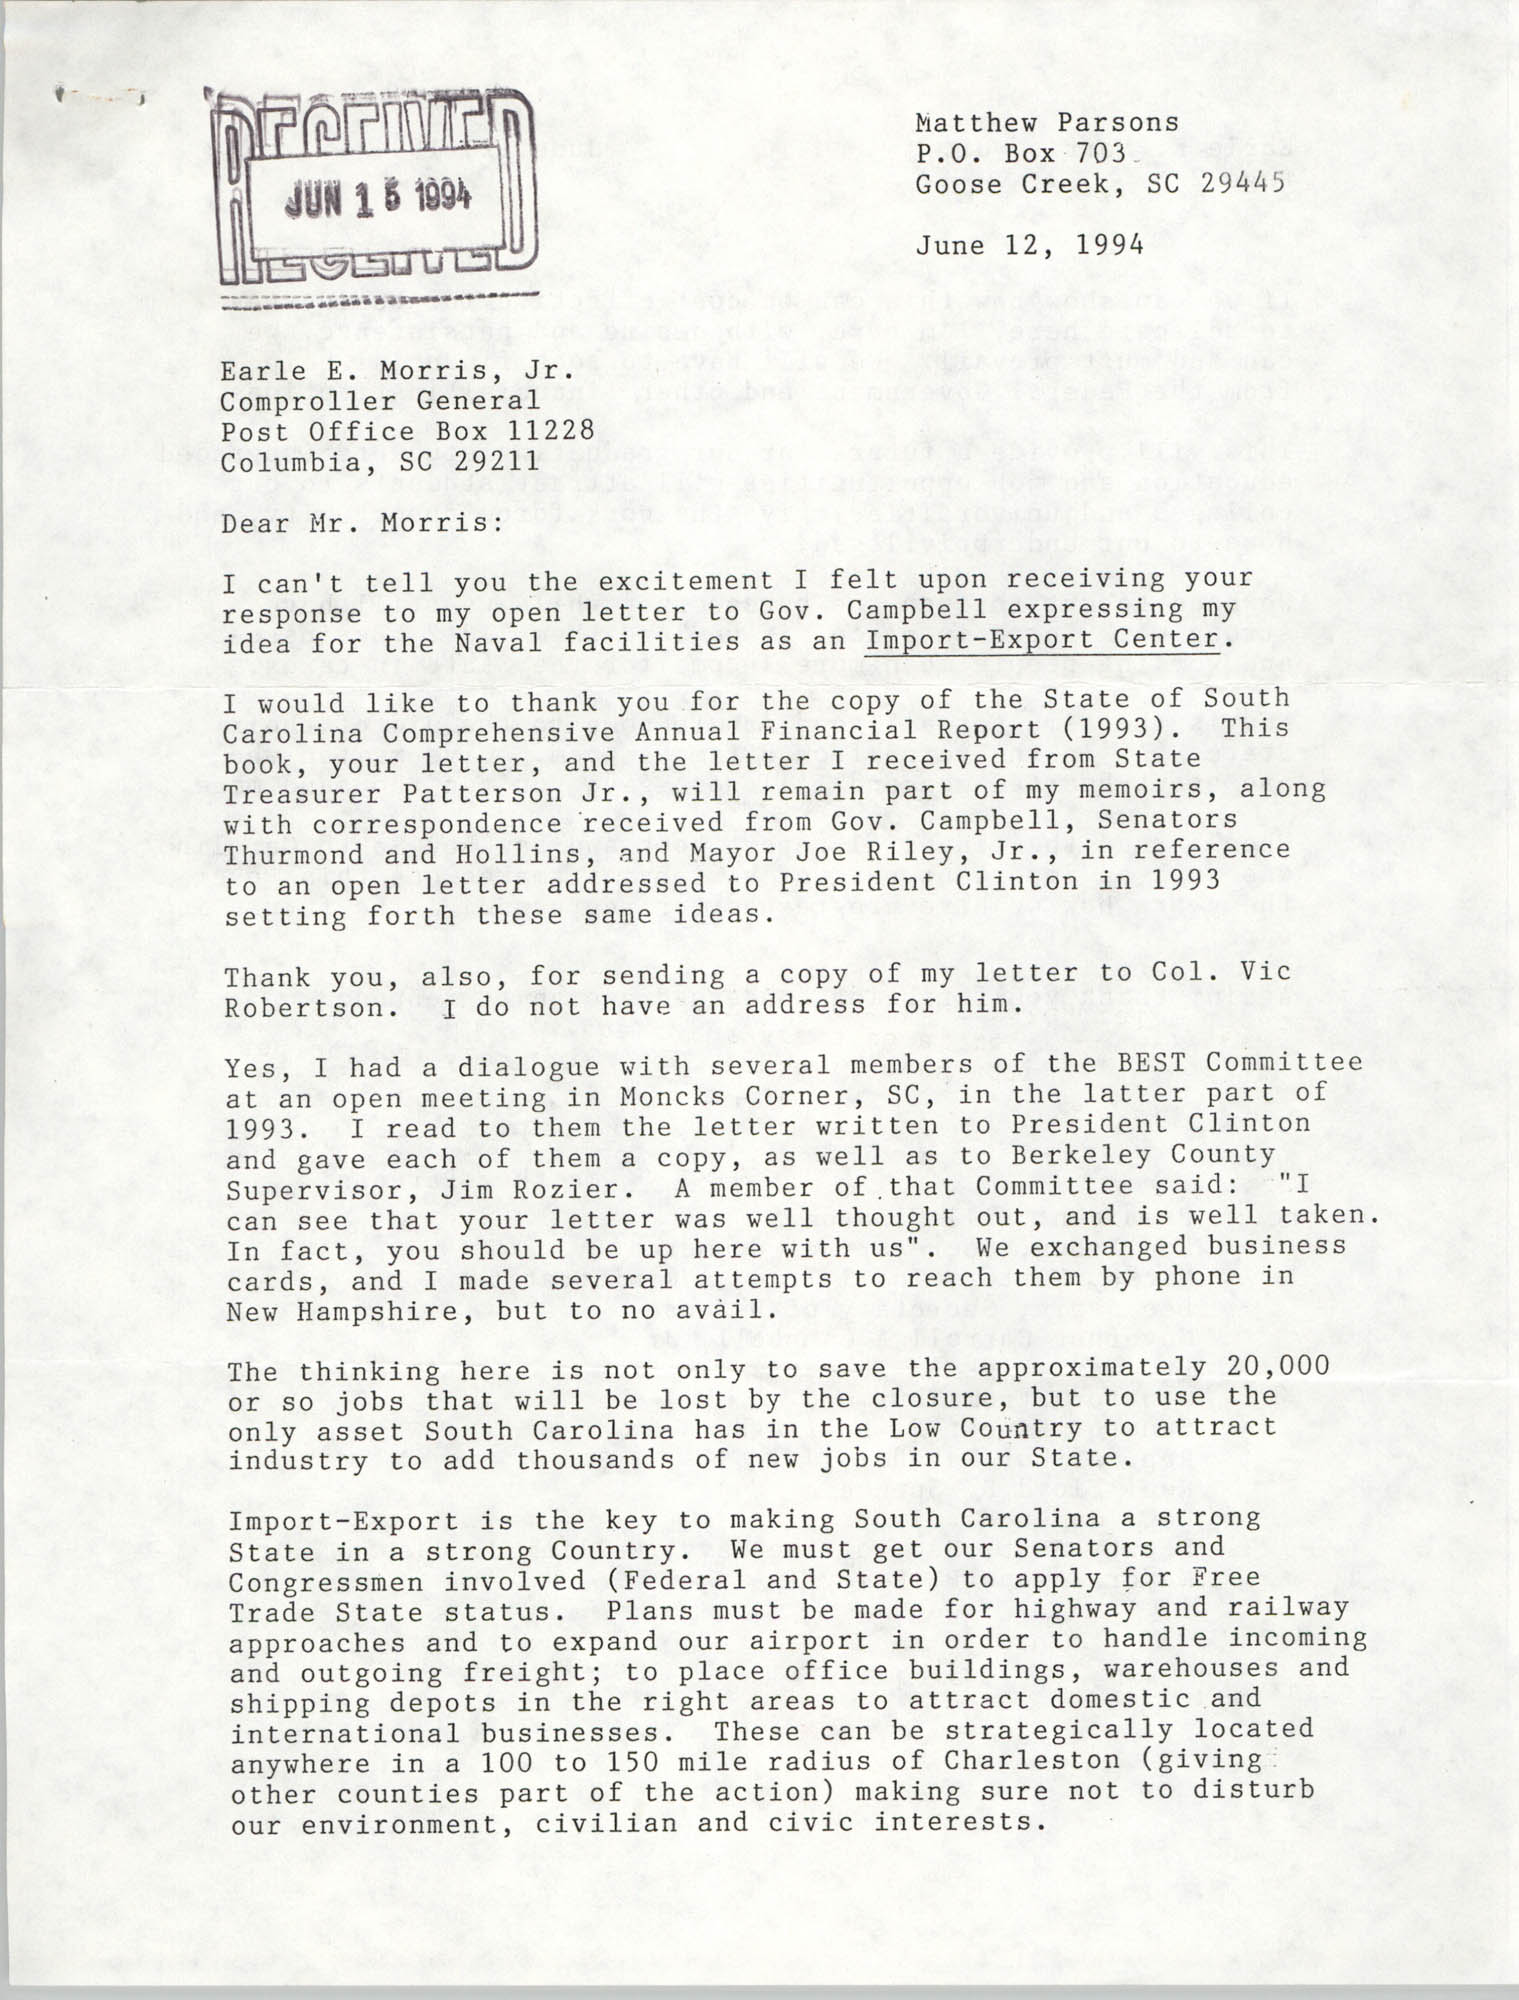 Letter from Matthew Parsons to Earle E. Morris, Jr., June 12, 1994